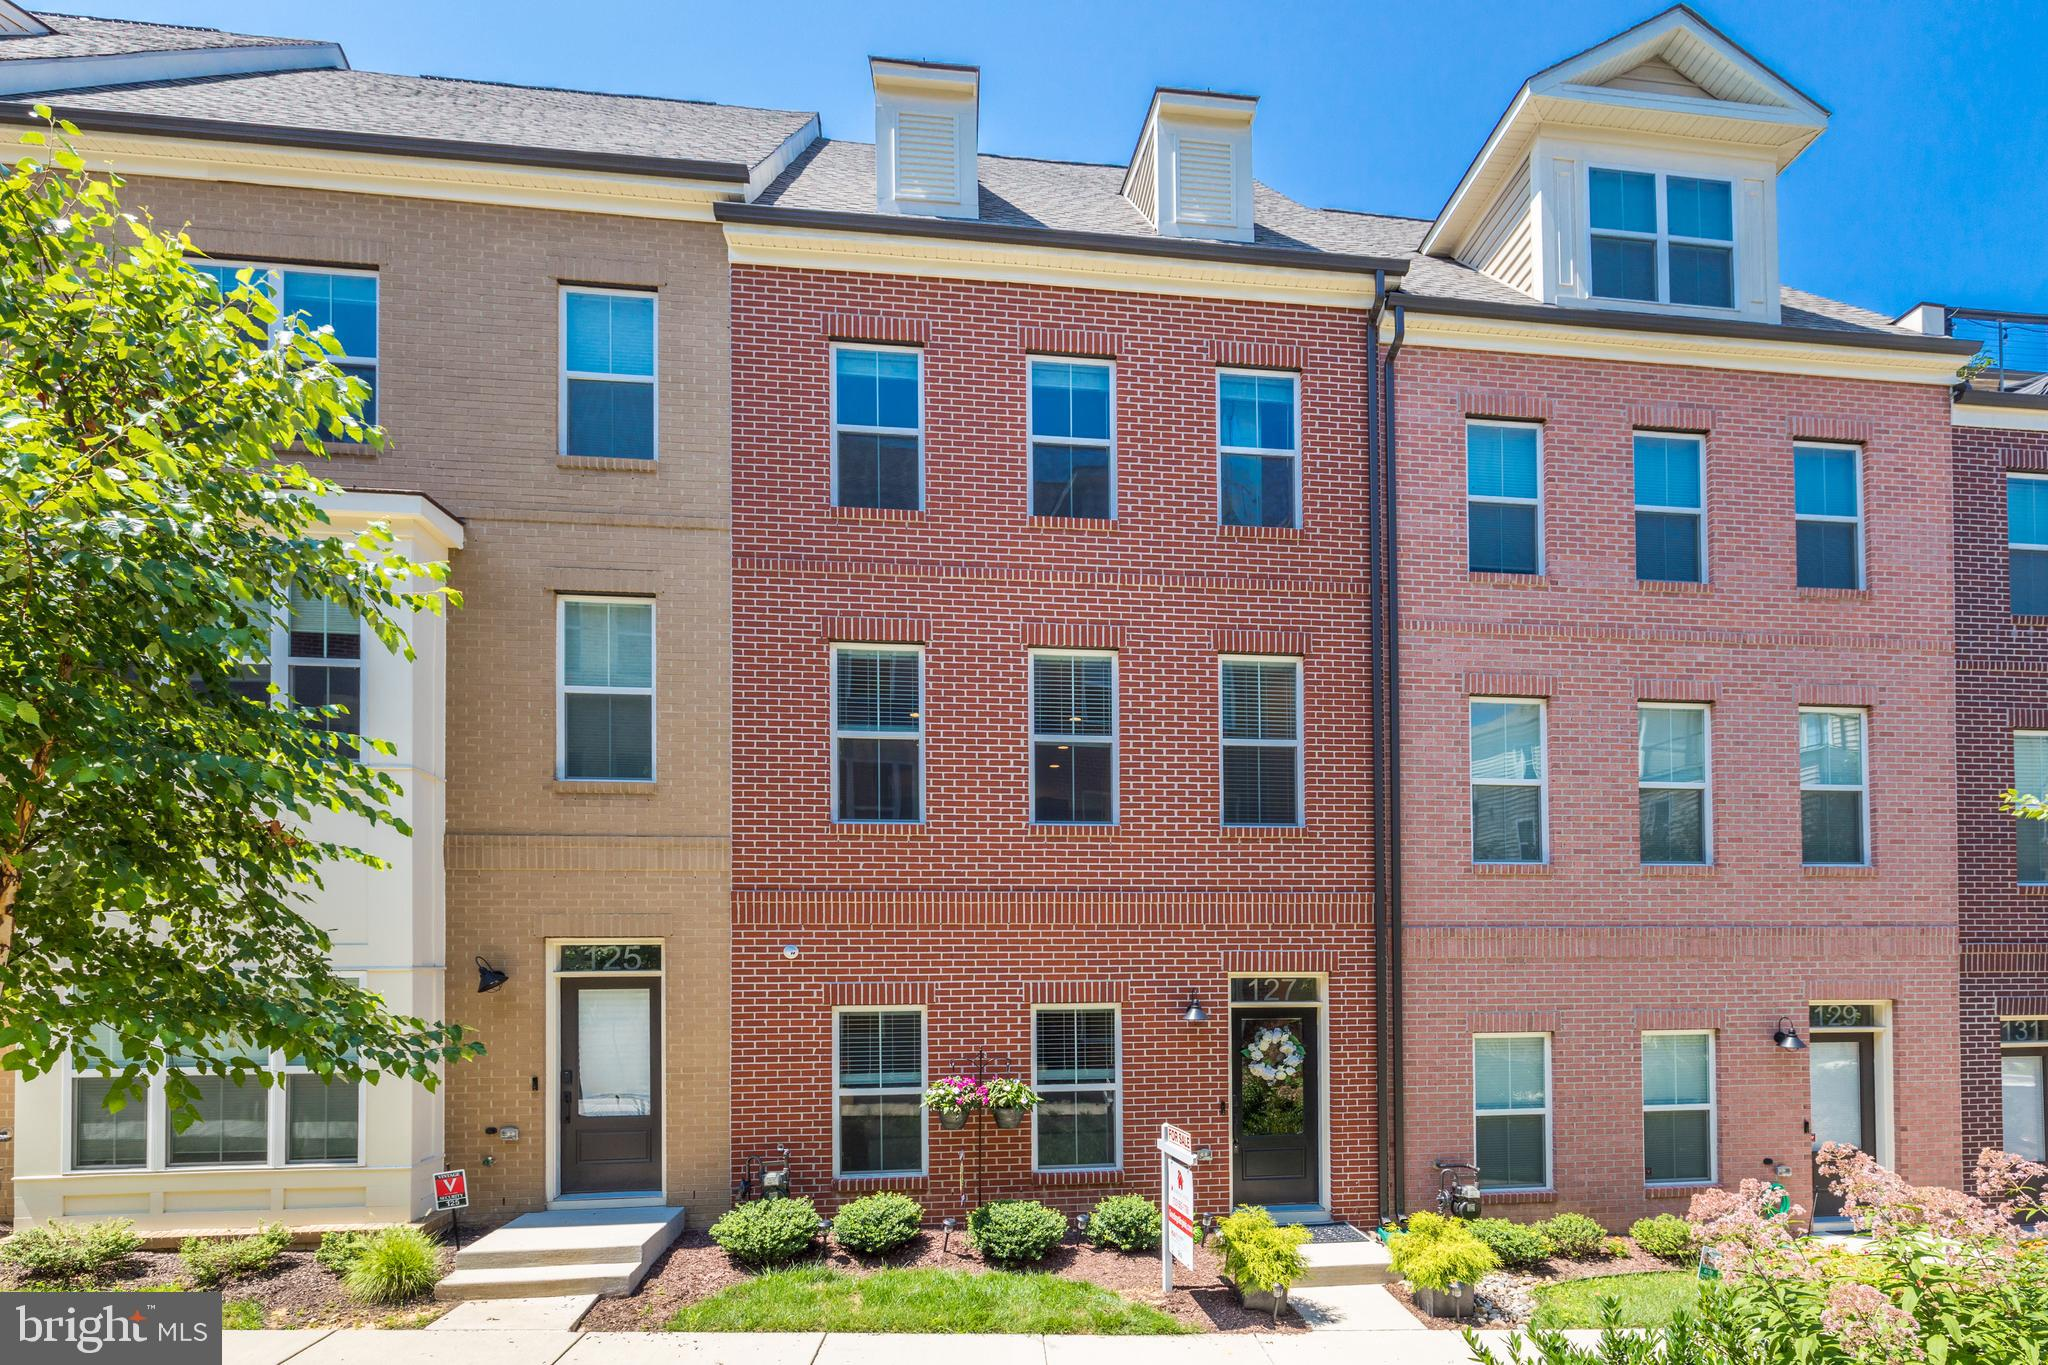 A beautiful and pristine home in Silver Spring, MD, ONLY 200 yards from the metro station! You drive